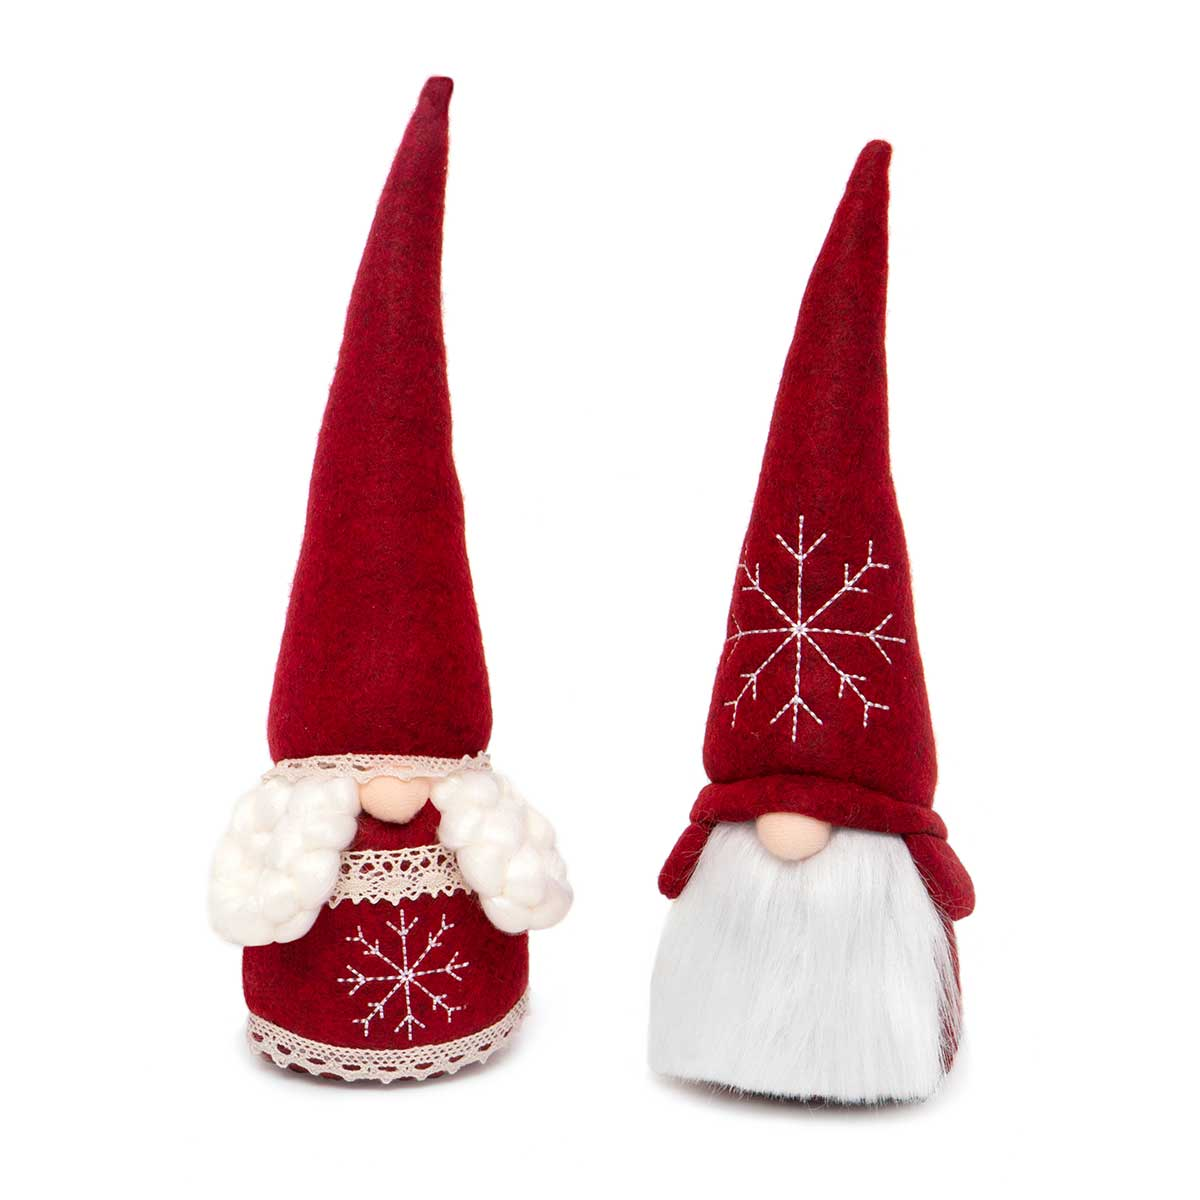 RED SWEDISH COUPLE GNOME WITH WIRED